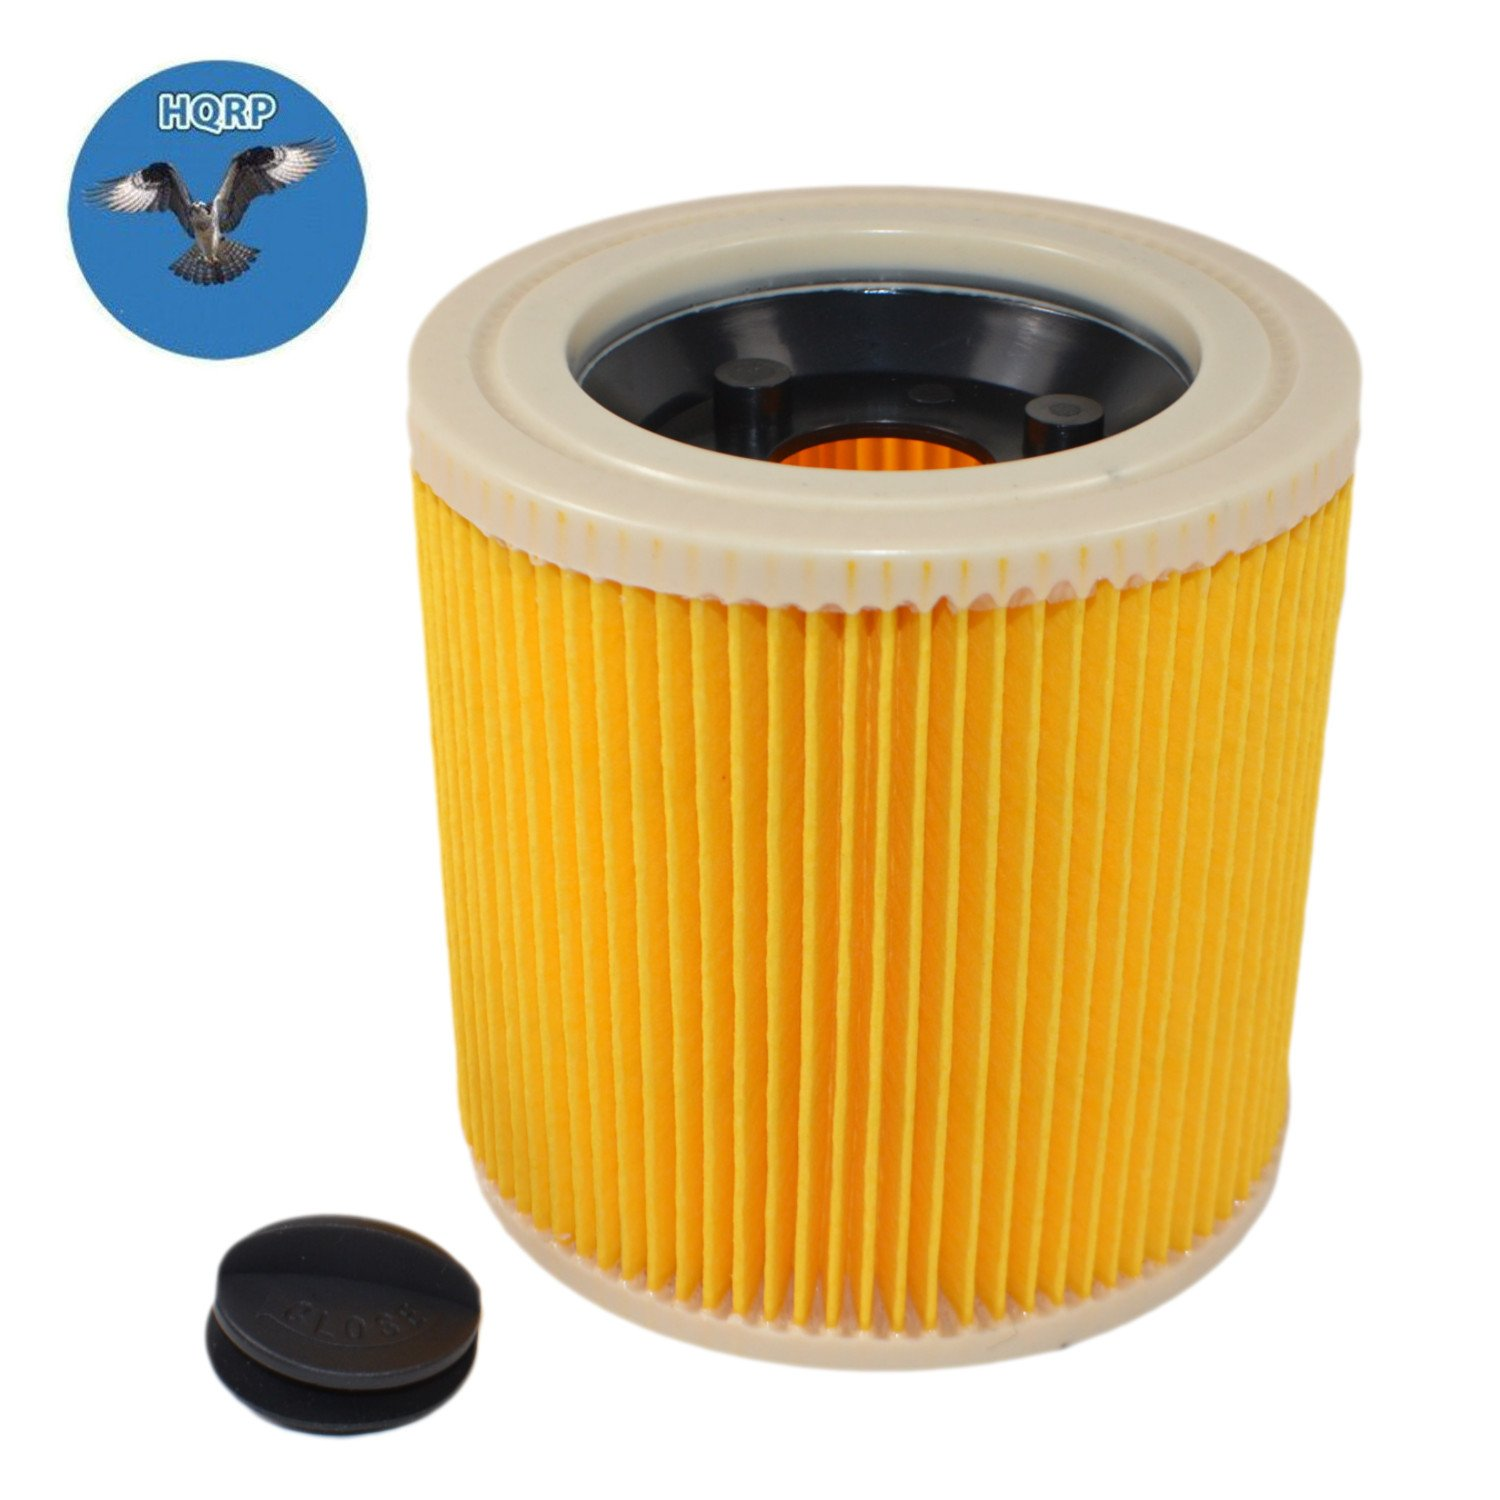 7244e468ecf HQRP Cartridge Filter for Karcher WD 3 Premium, WD3 Premium Car Kit, WD3  Premium Fireplace Kit, WD3 Premium Home Multi-purpose Vacuum Cleaner WD 3  Wet & Dry ...